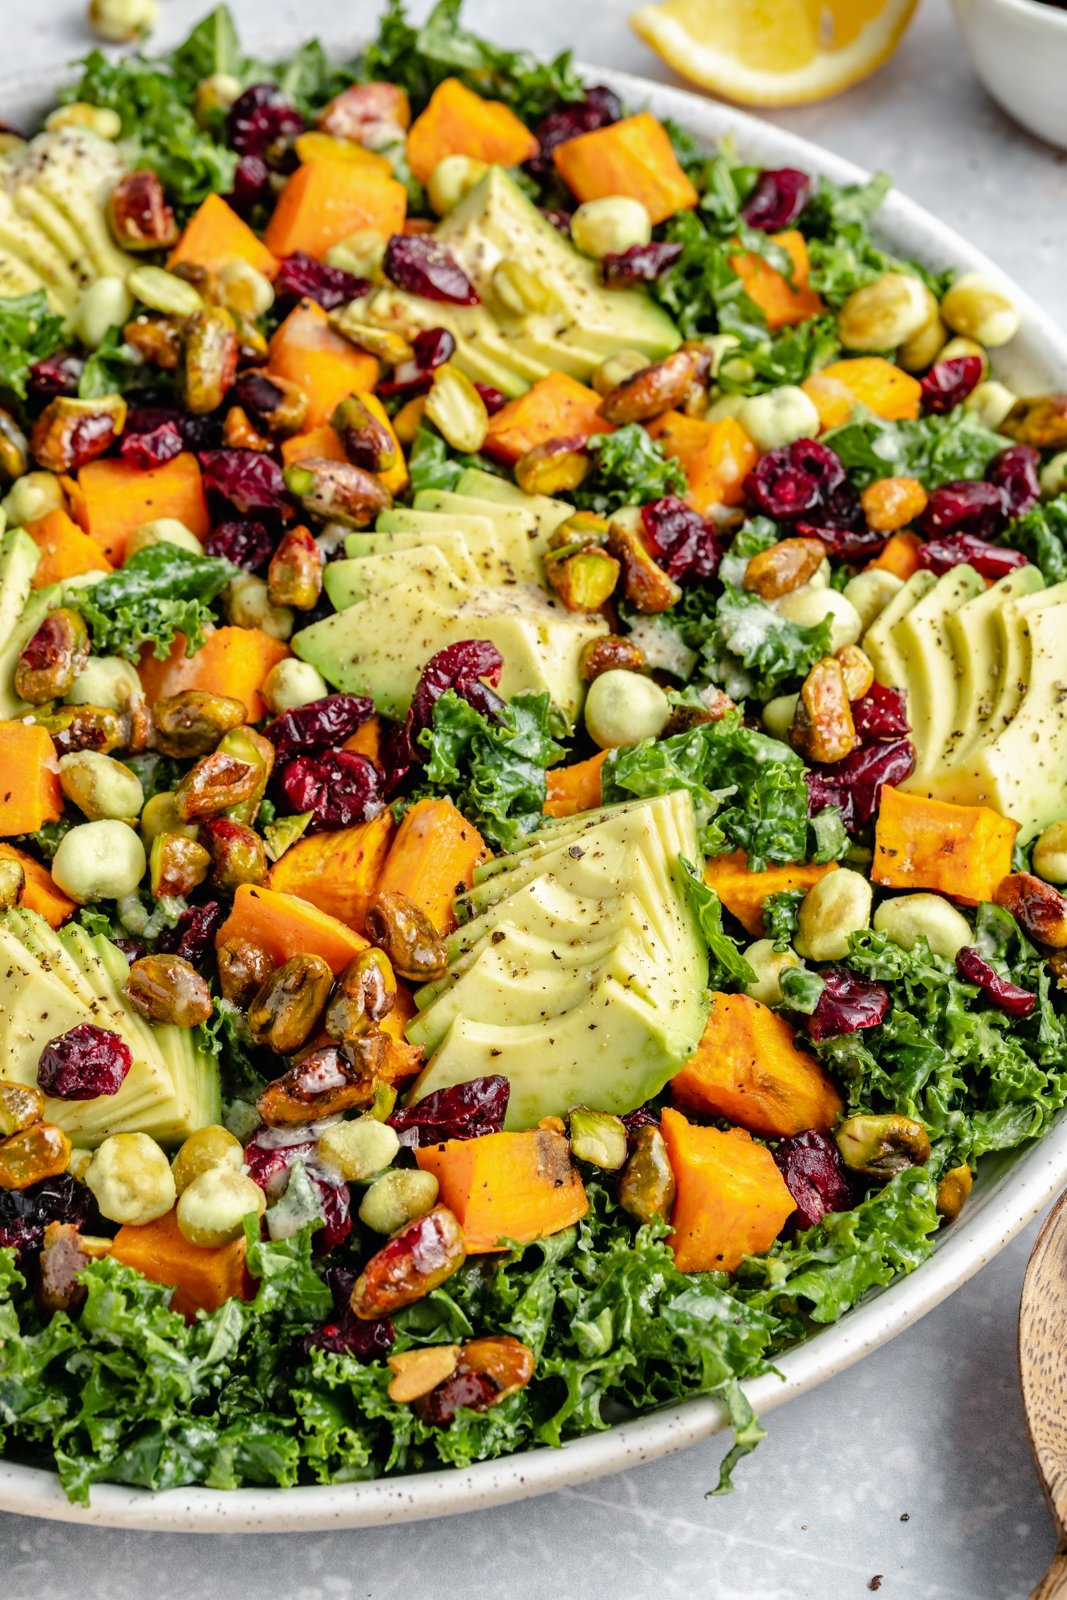 up-close shot of a kale and sweet potato salad with avocado and dried cranberries